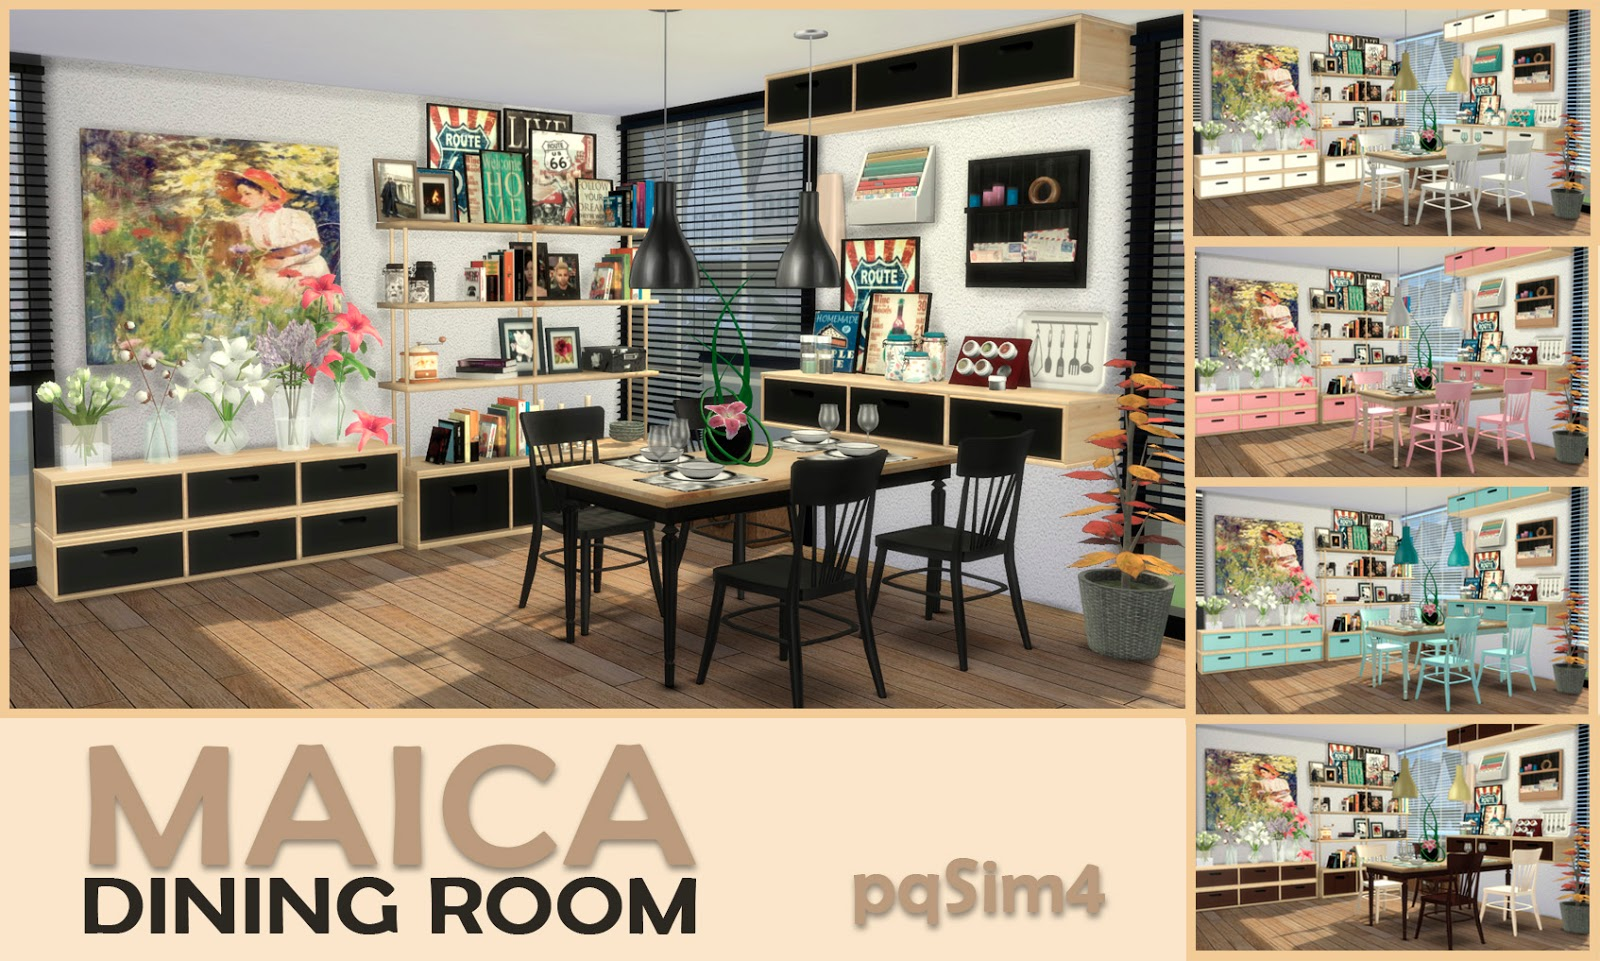 Maica Dining Room by pqSim4